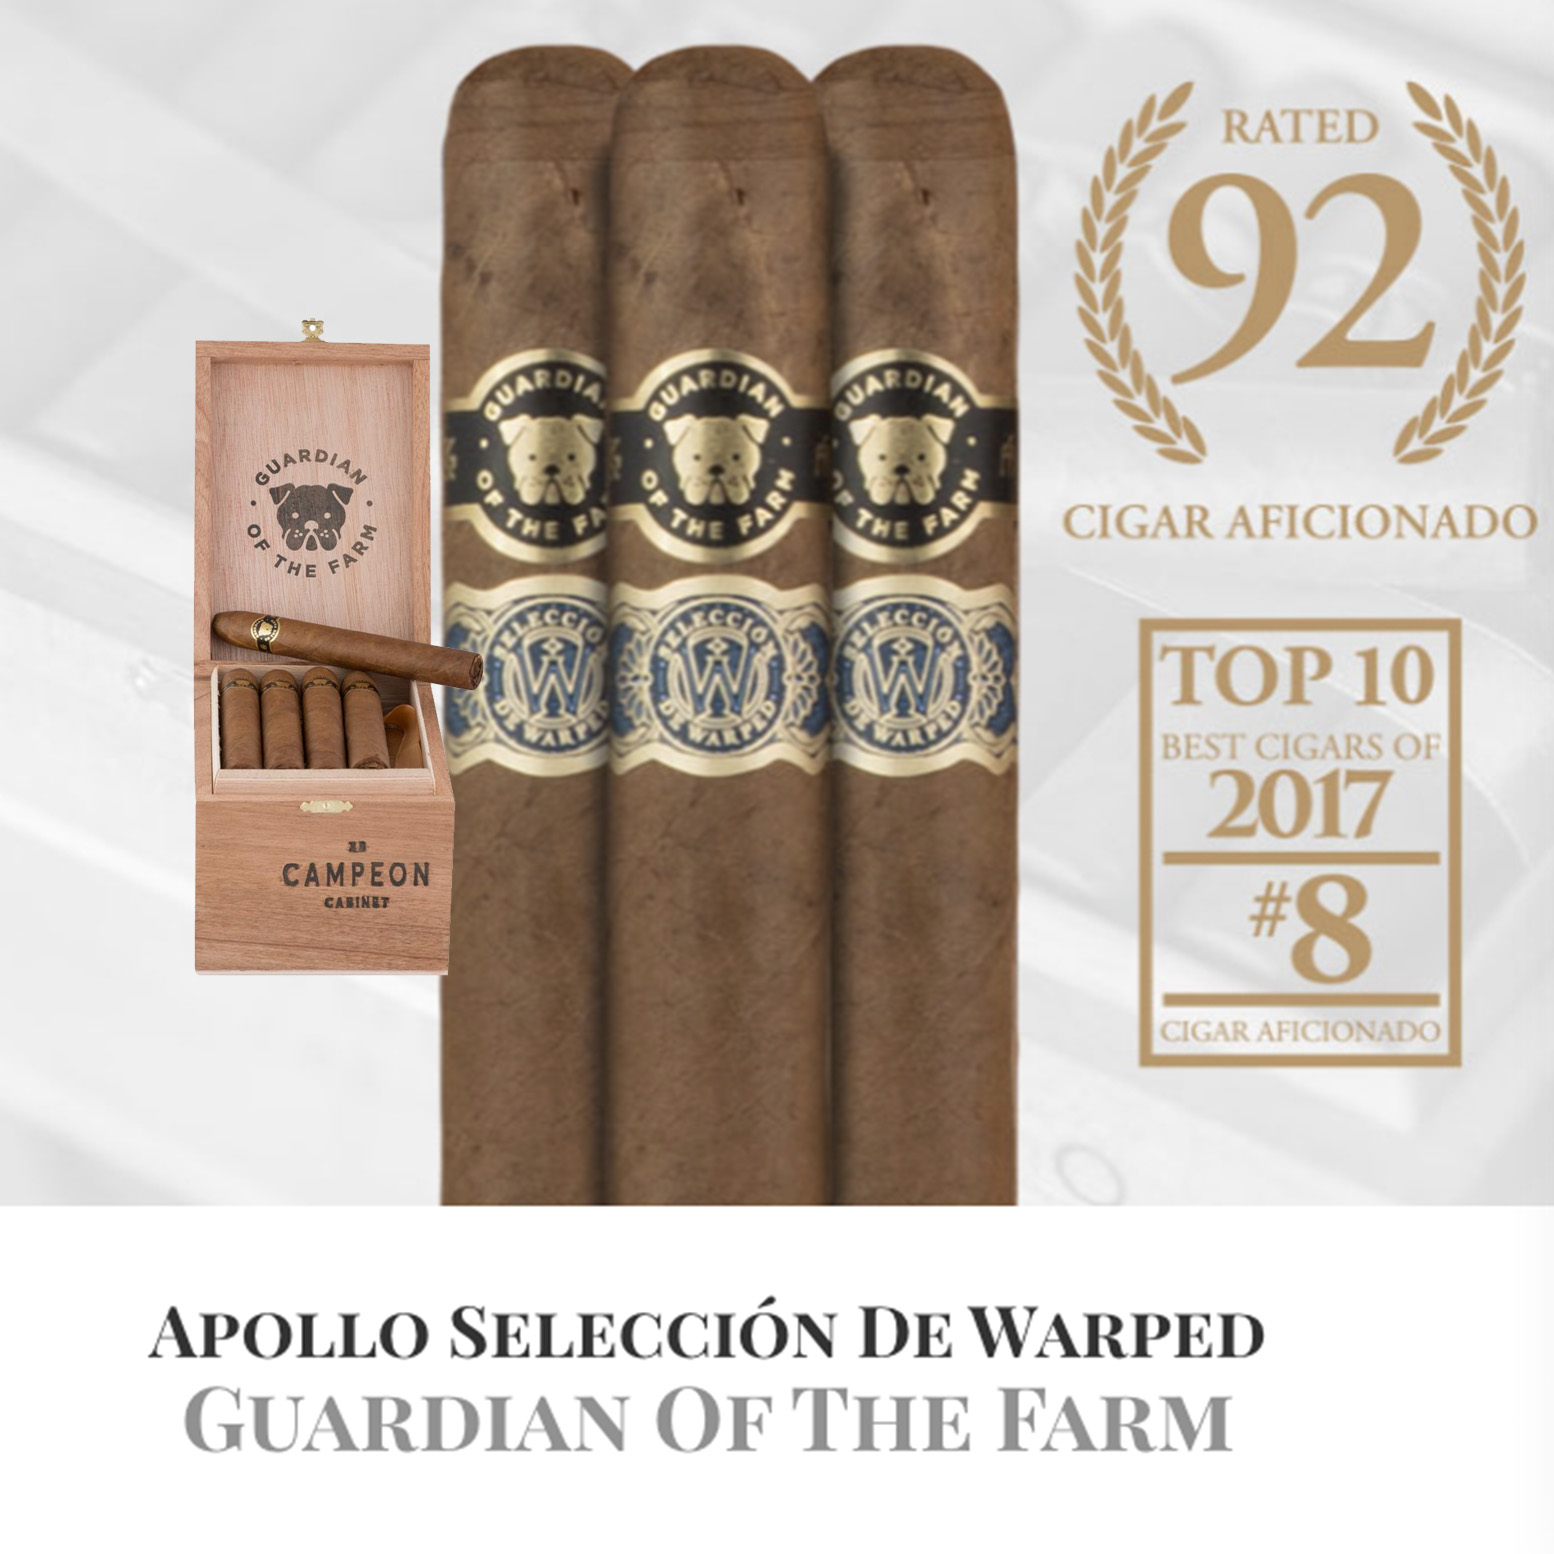 Guardian of the Farm Apollo Selleccion Warped